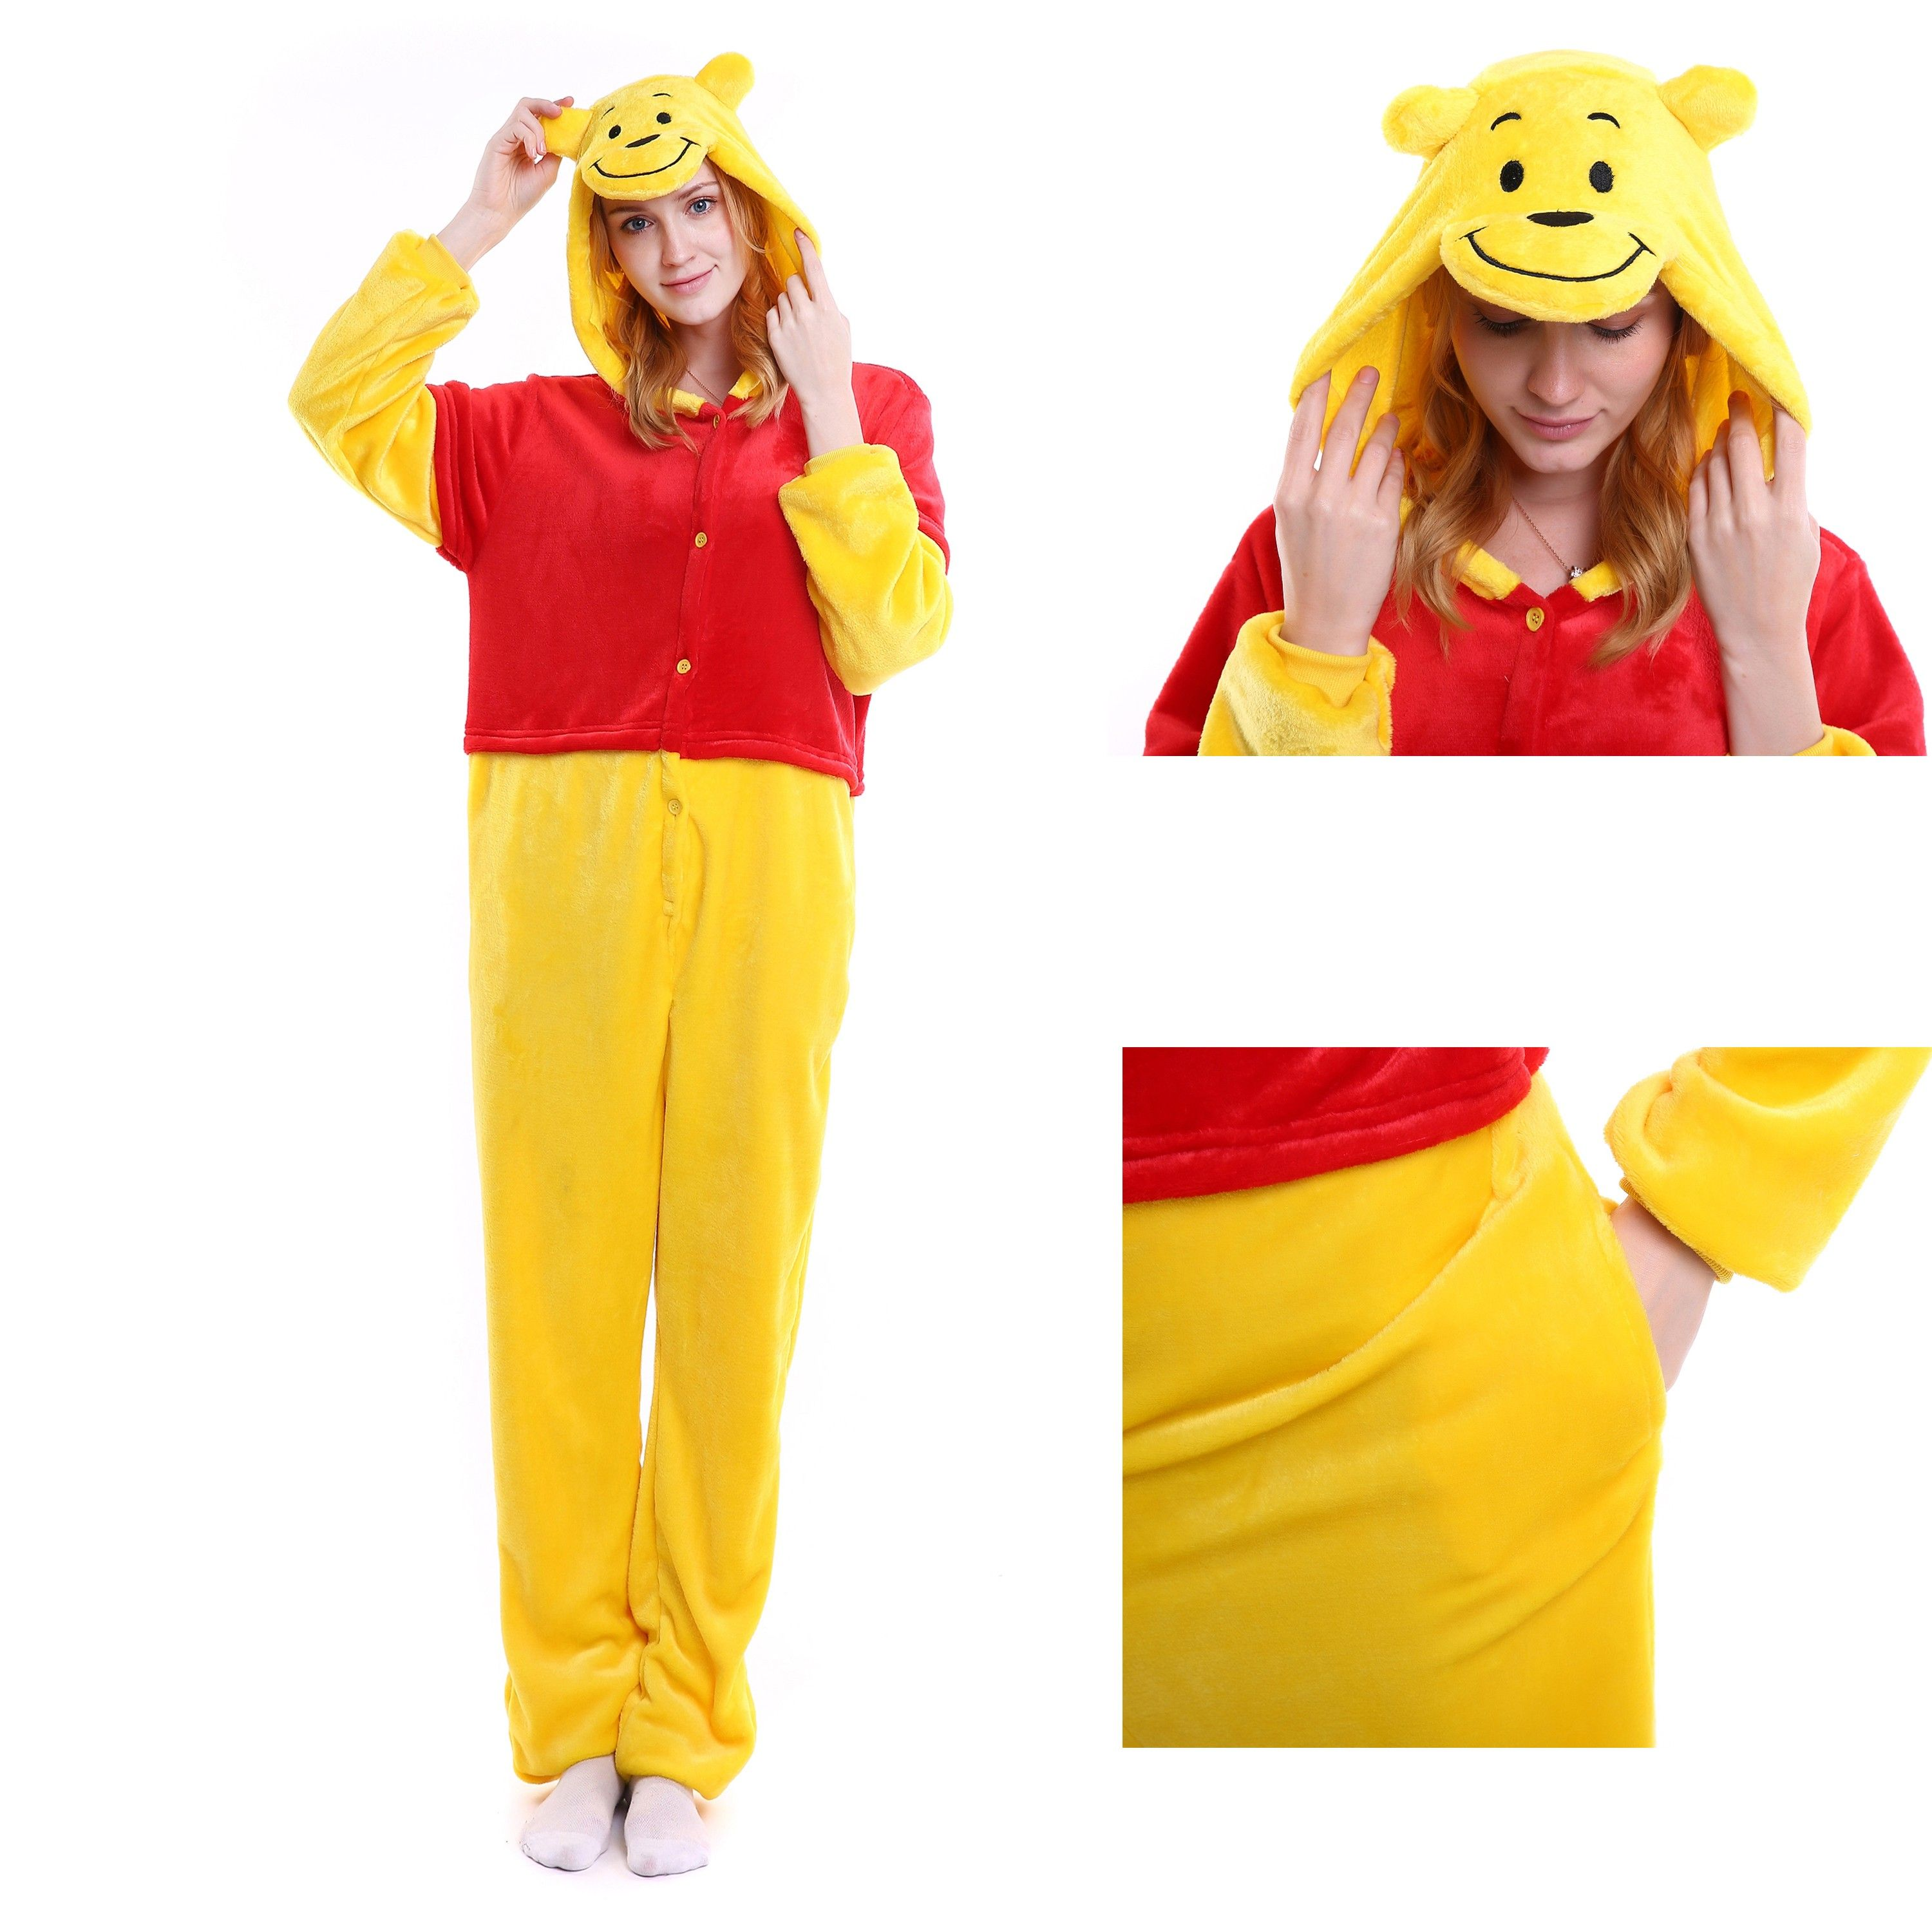 a0a60f90d Winnie the Pooh Onesie for Adult Animal Kigurumi Disney Pajama Party ...